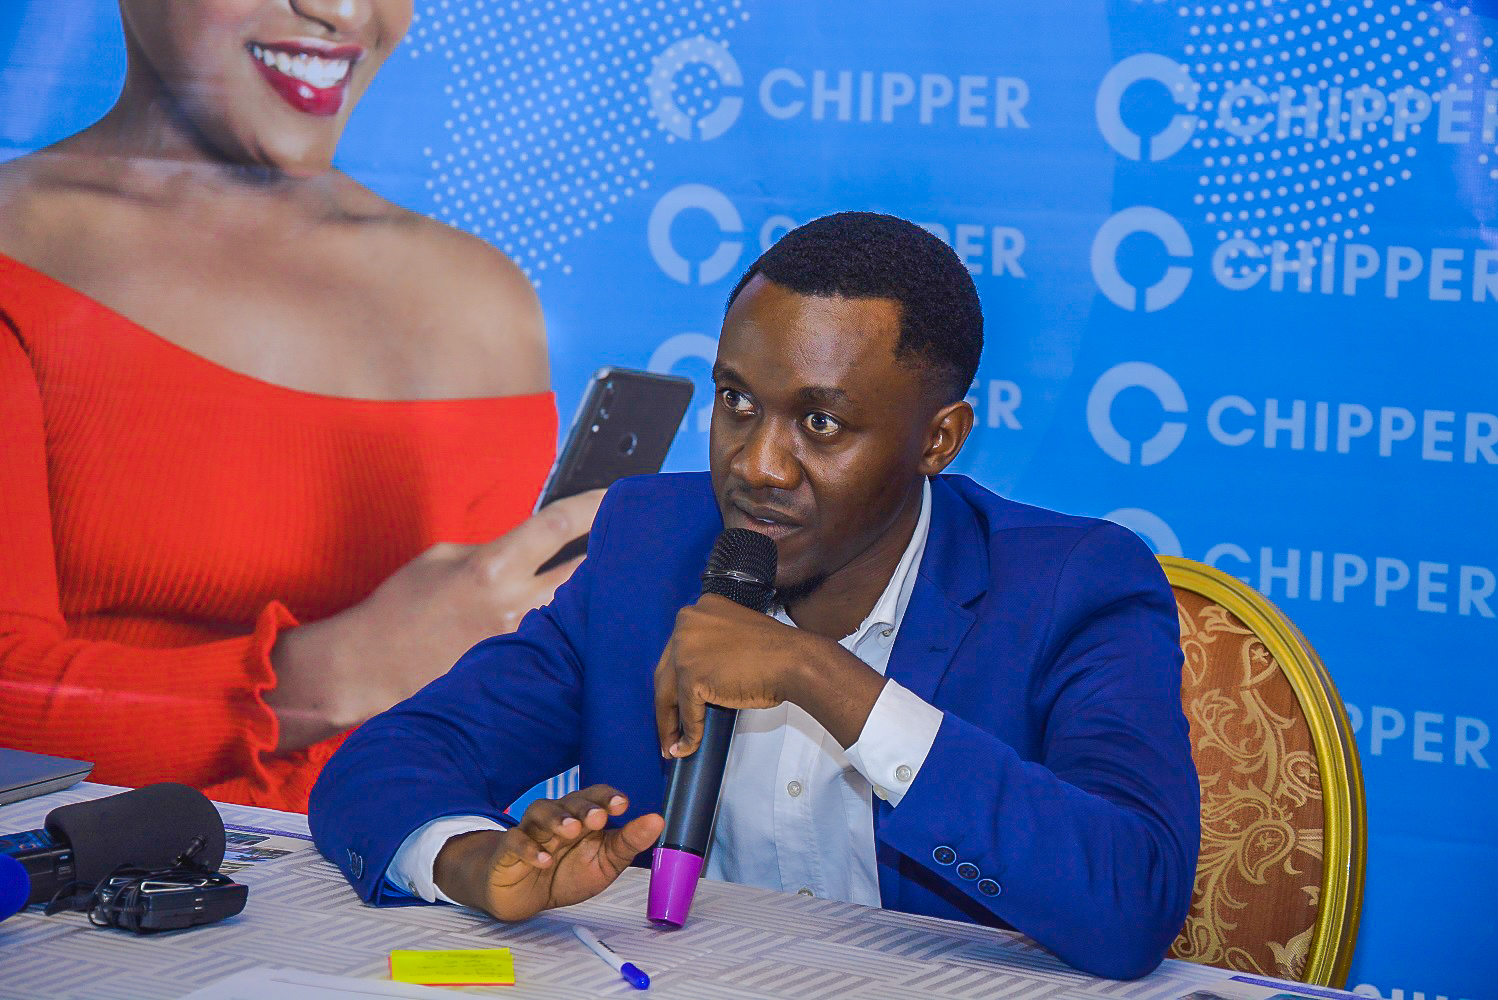 Chipper Technologies Executive Director; Ed Mageba speaking at the launch of Chipper Cash in Uganda at a press conference held at Grand Imperial Hotel on Wednesday May, 15th 2019.